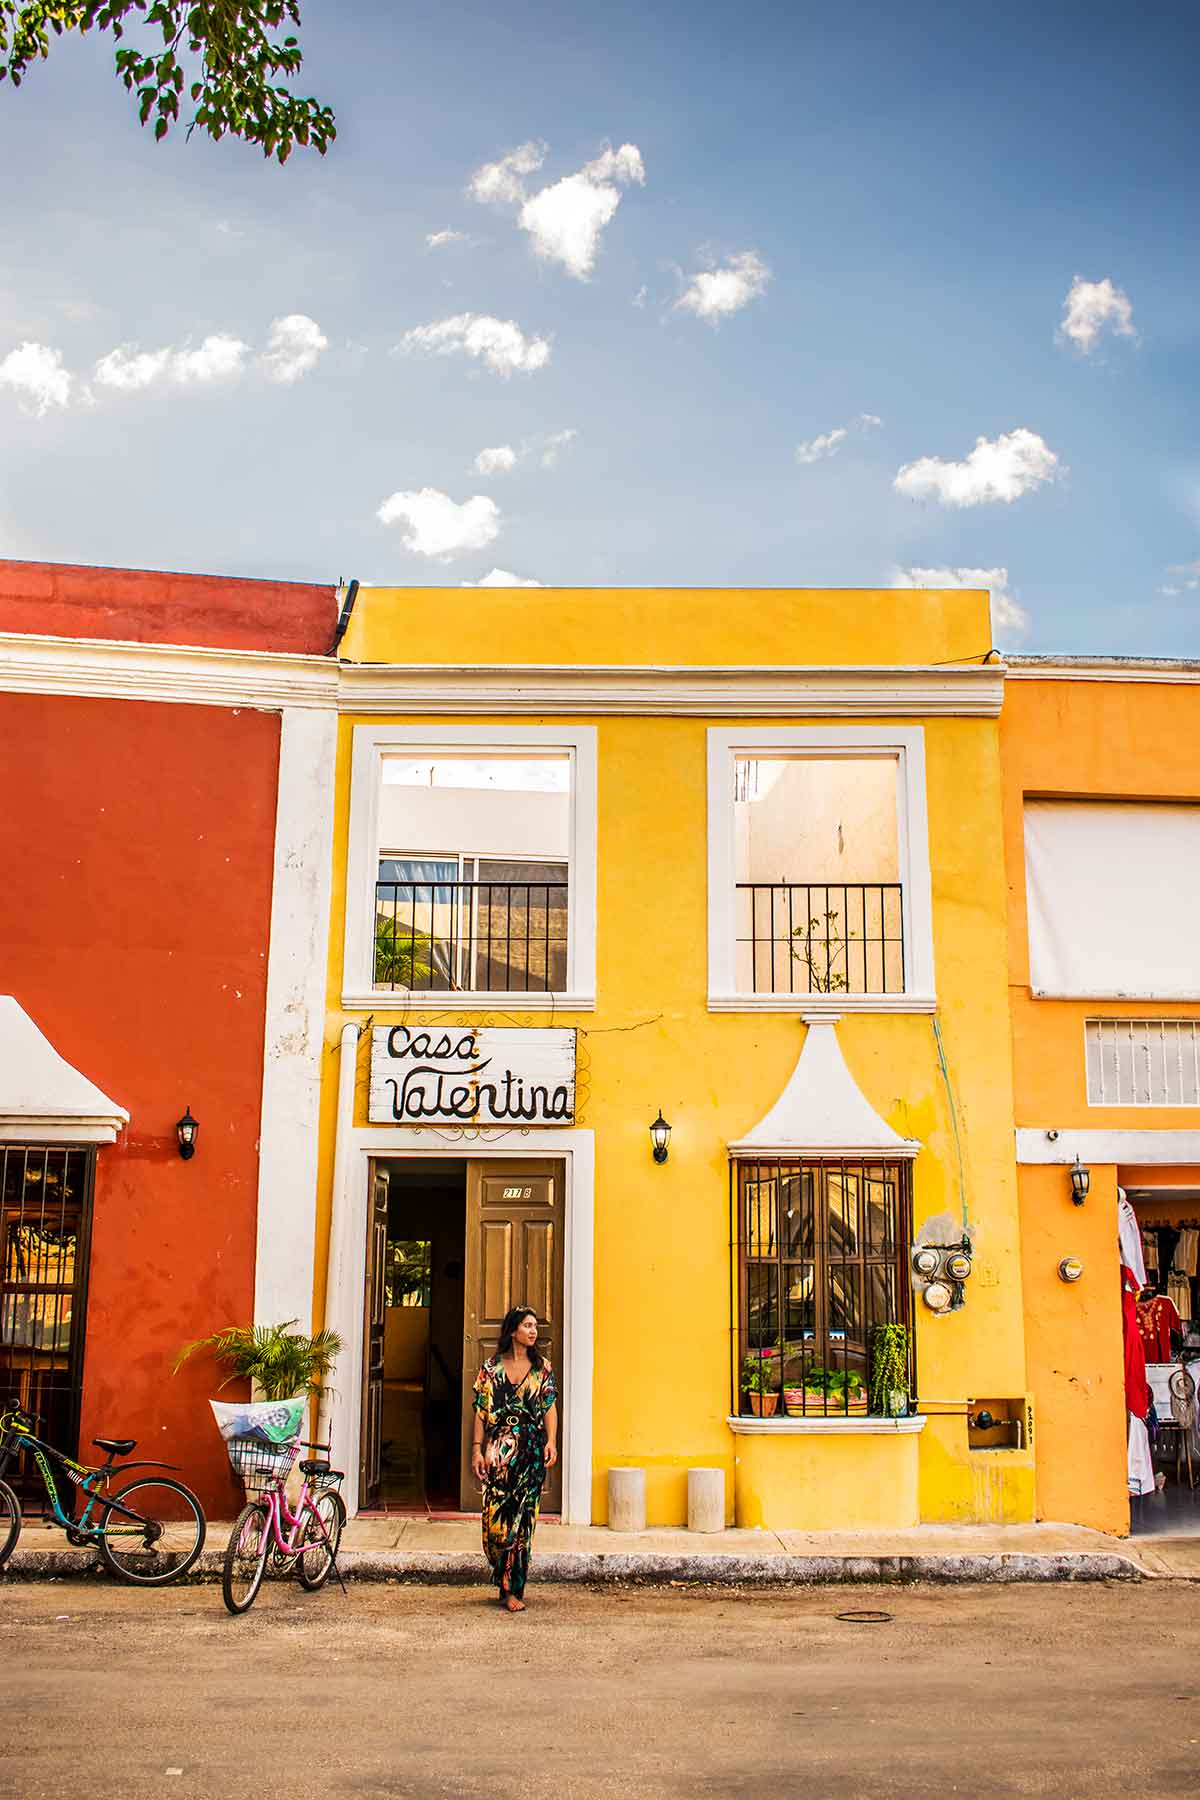 20 EPIC Valladolid Instagram spots for travelling Mexico. A woman walks across a street with a cute yellow store behind her